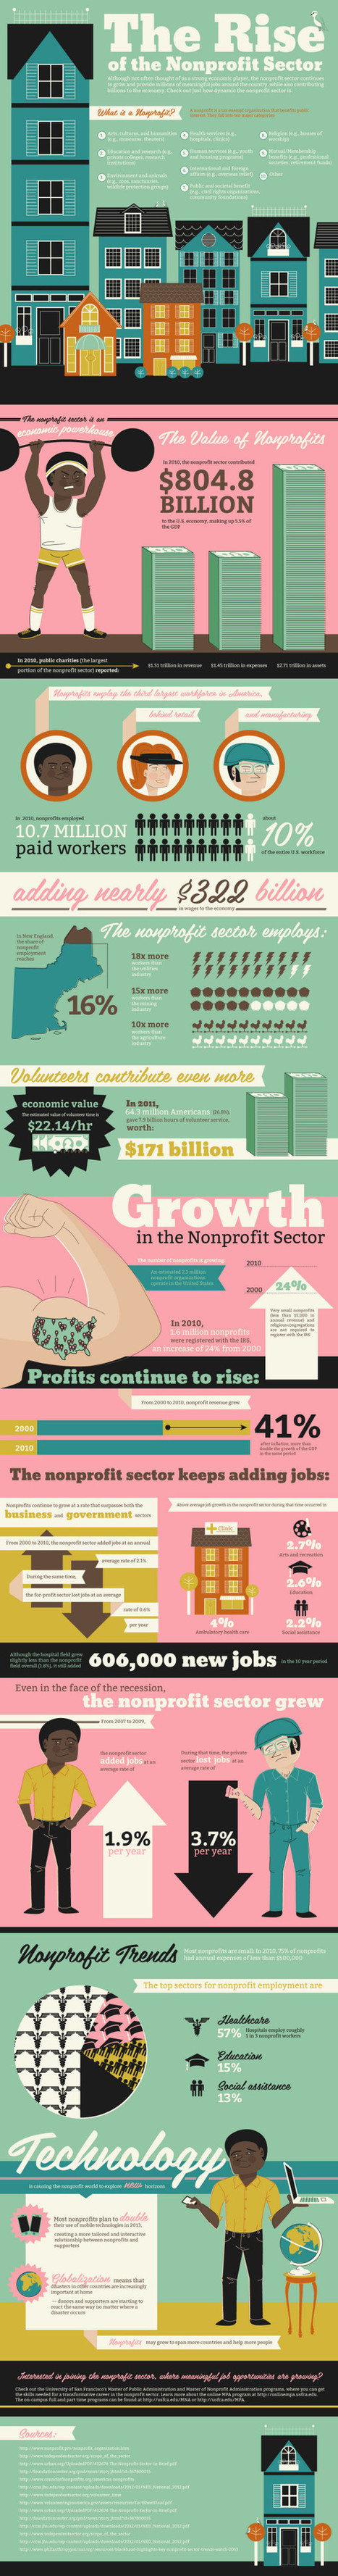 The rise of the non-profit sector [infographic] / via USF | GIBSIccURATION | Scoop.it